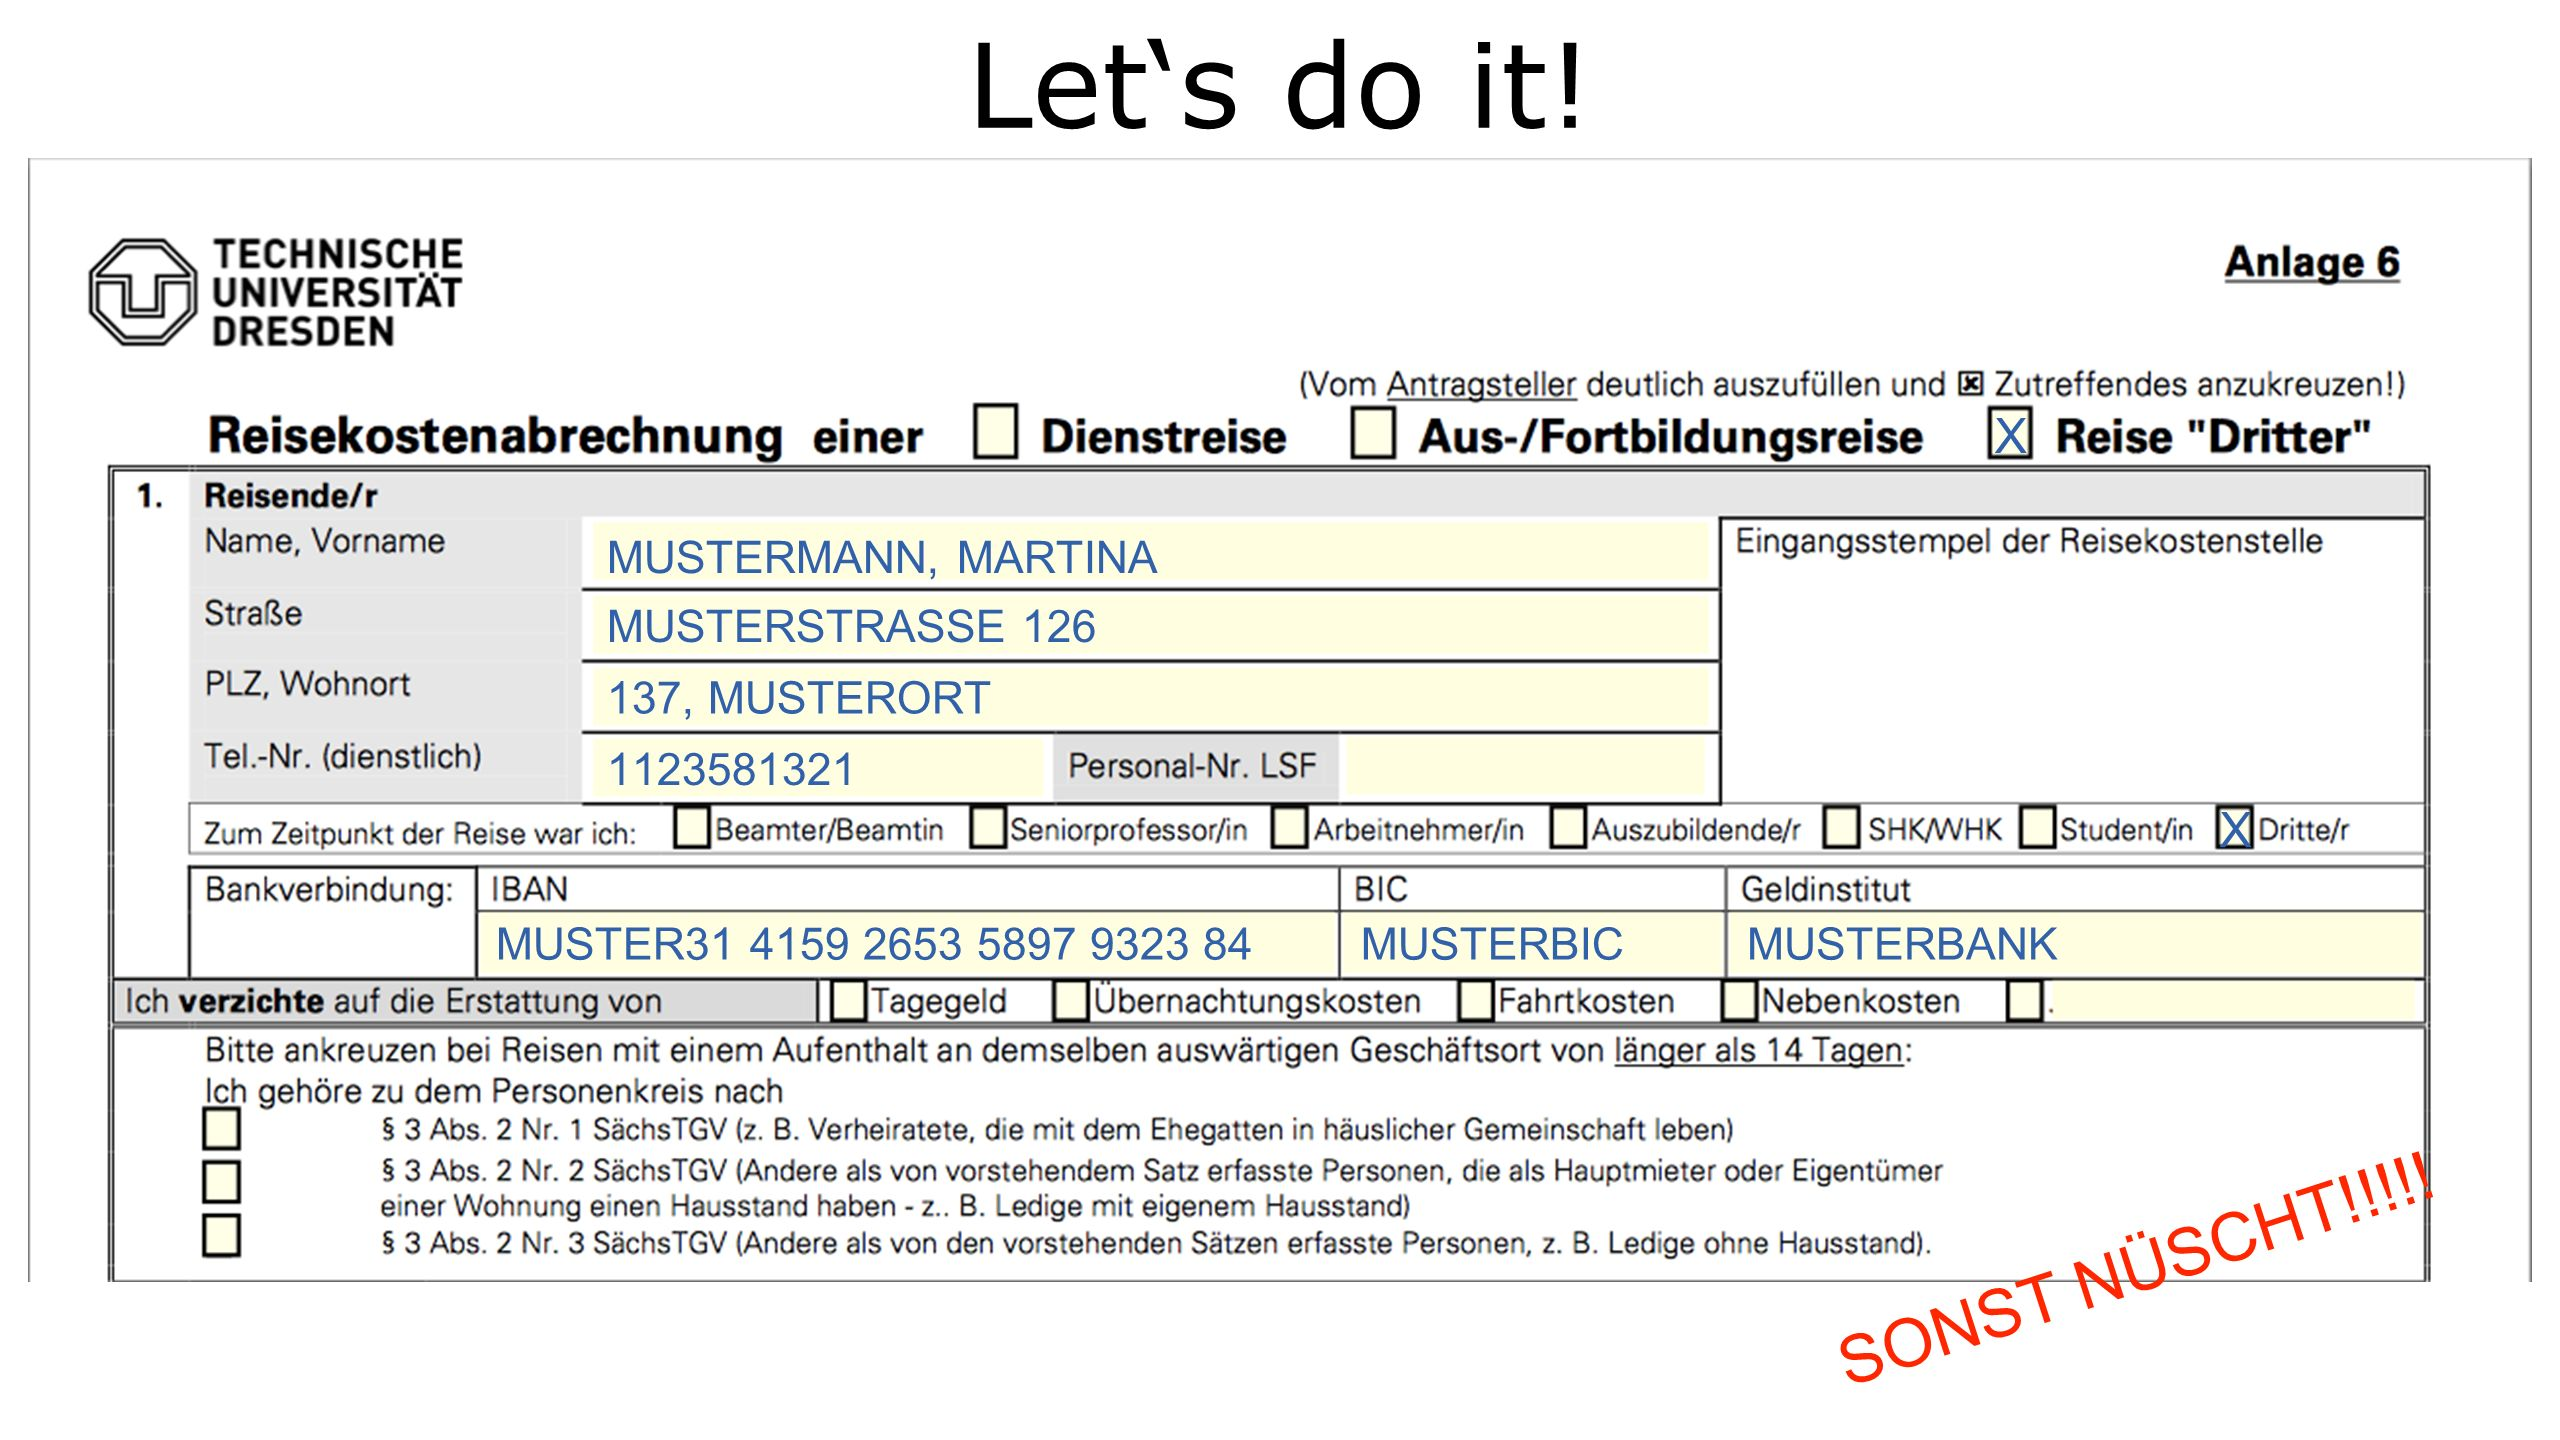 X MUSTERMANN, MARTINA MUSTERSTRASSE 126 137, MUSTERORT 1123581321 X MUSTER31 4159 2653 5897 9323 84MUSTERBICMUSTERBANK SONST NÜSCHT!!!!! Let's do it!